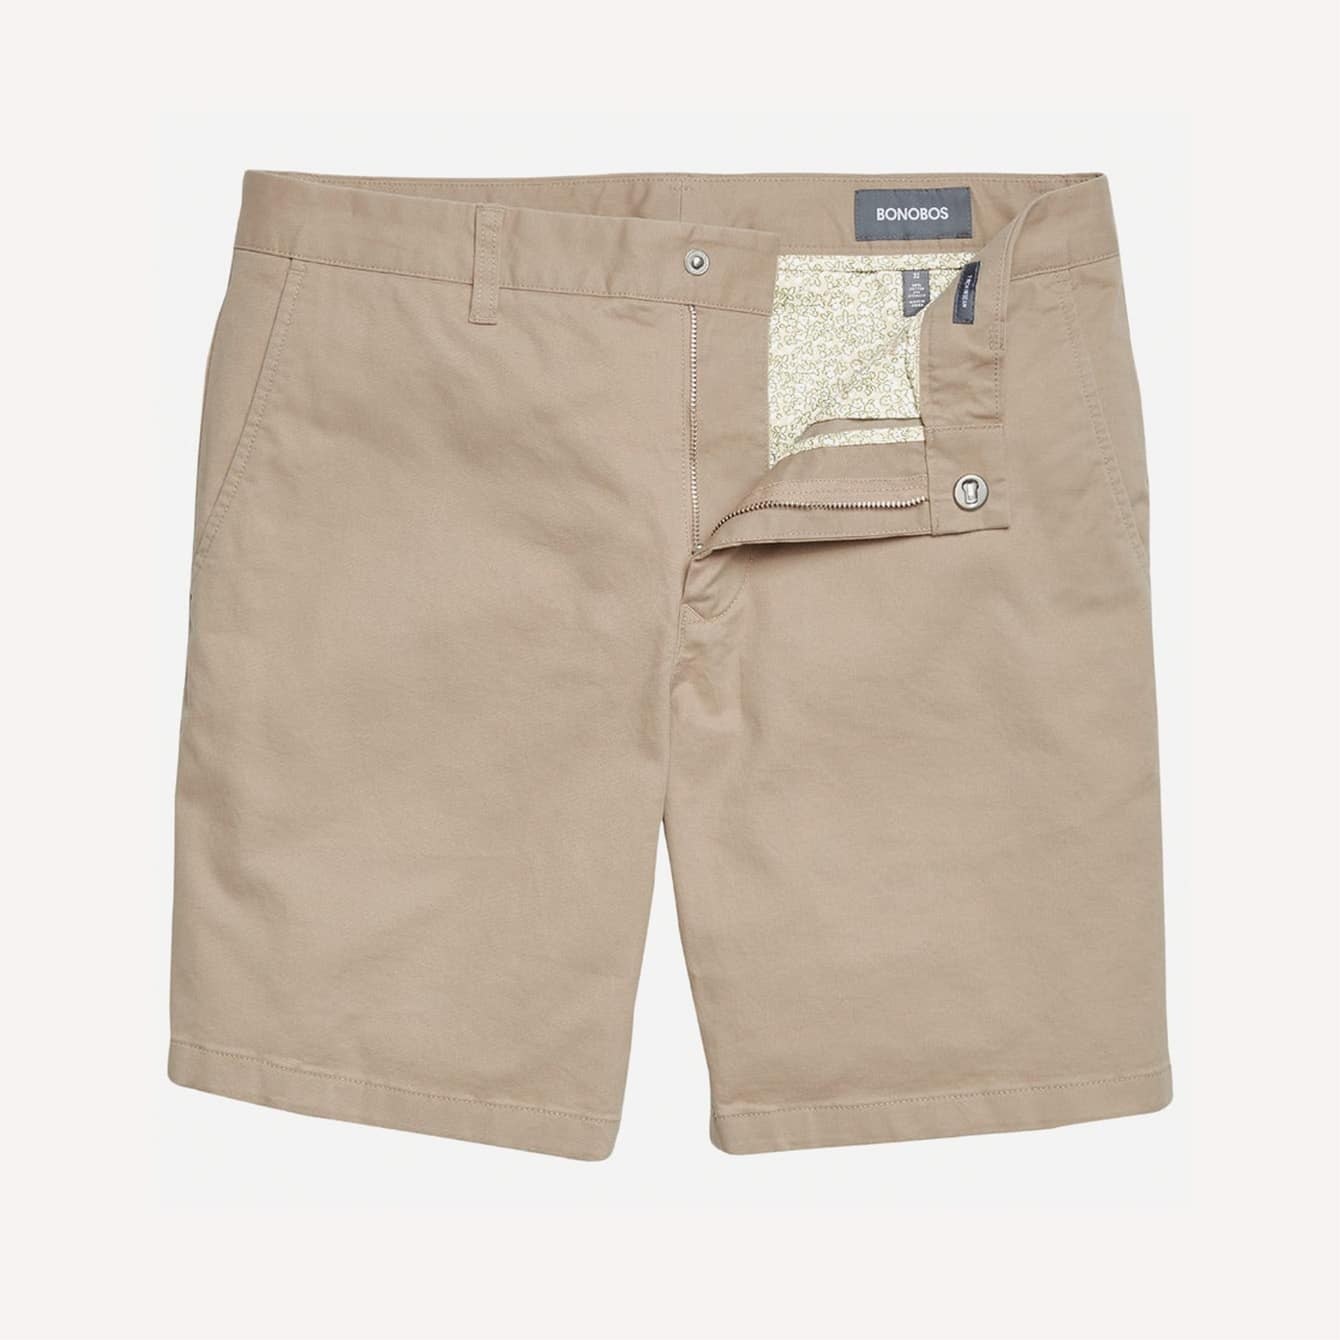 Bonobos Stretch Washed Chino Shorts